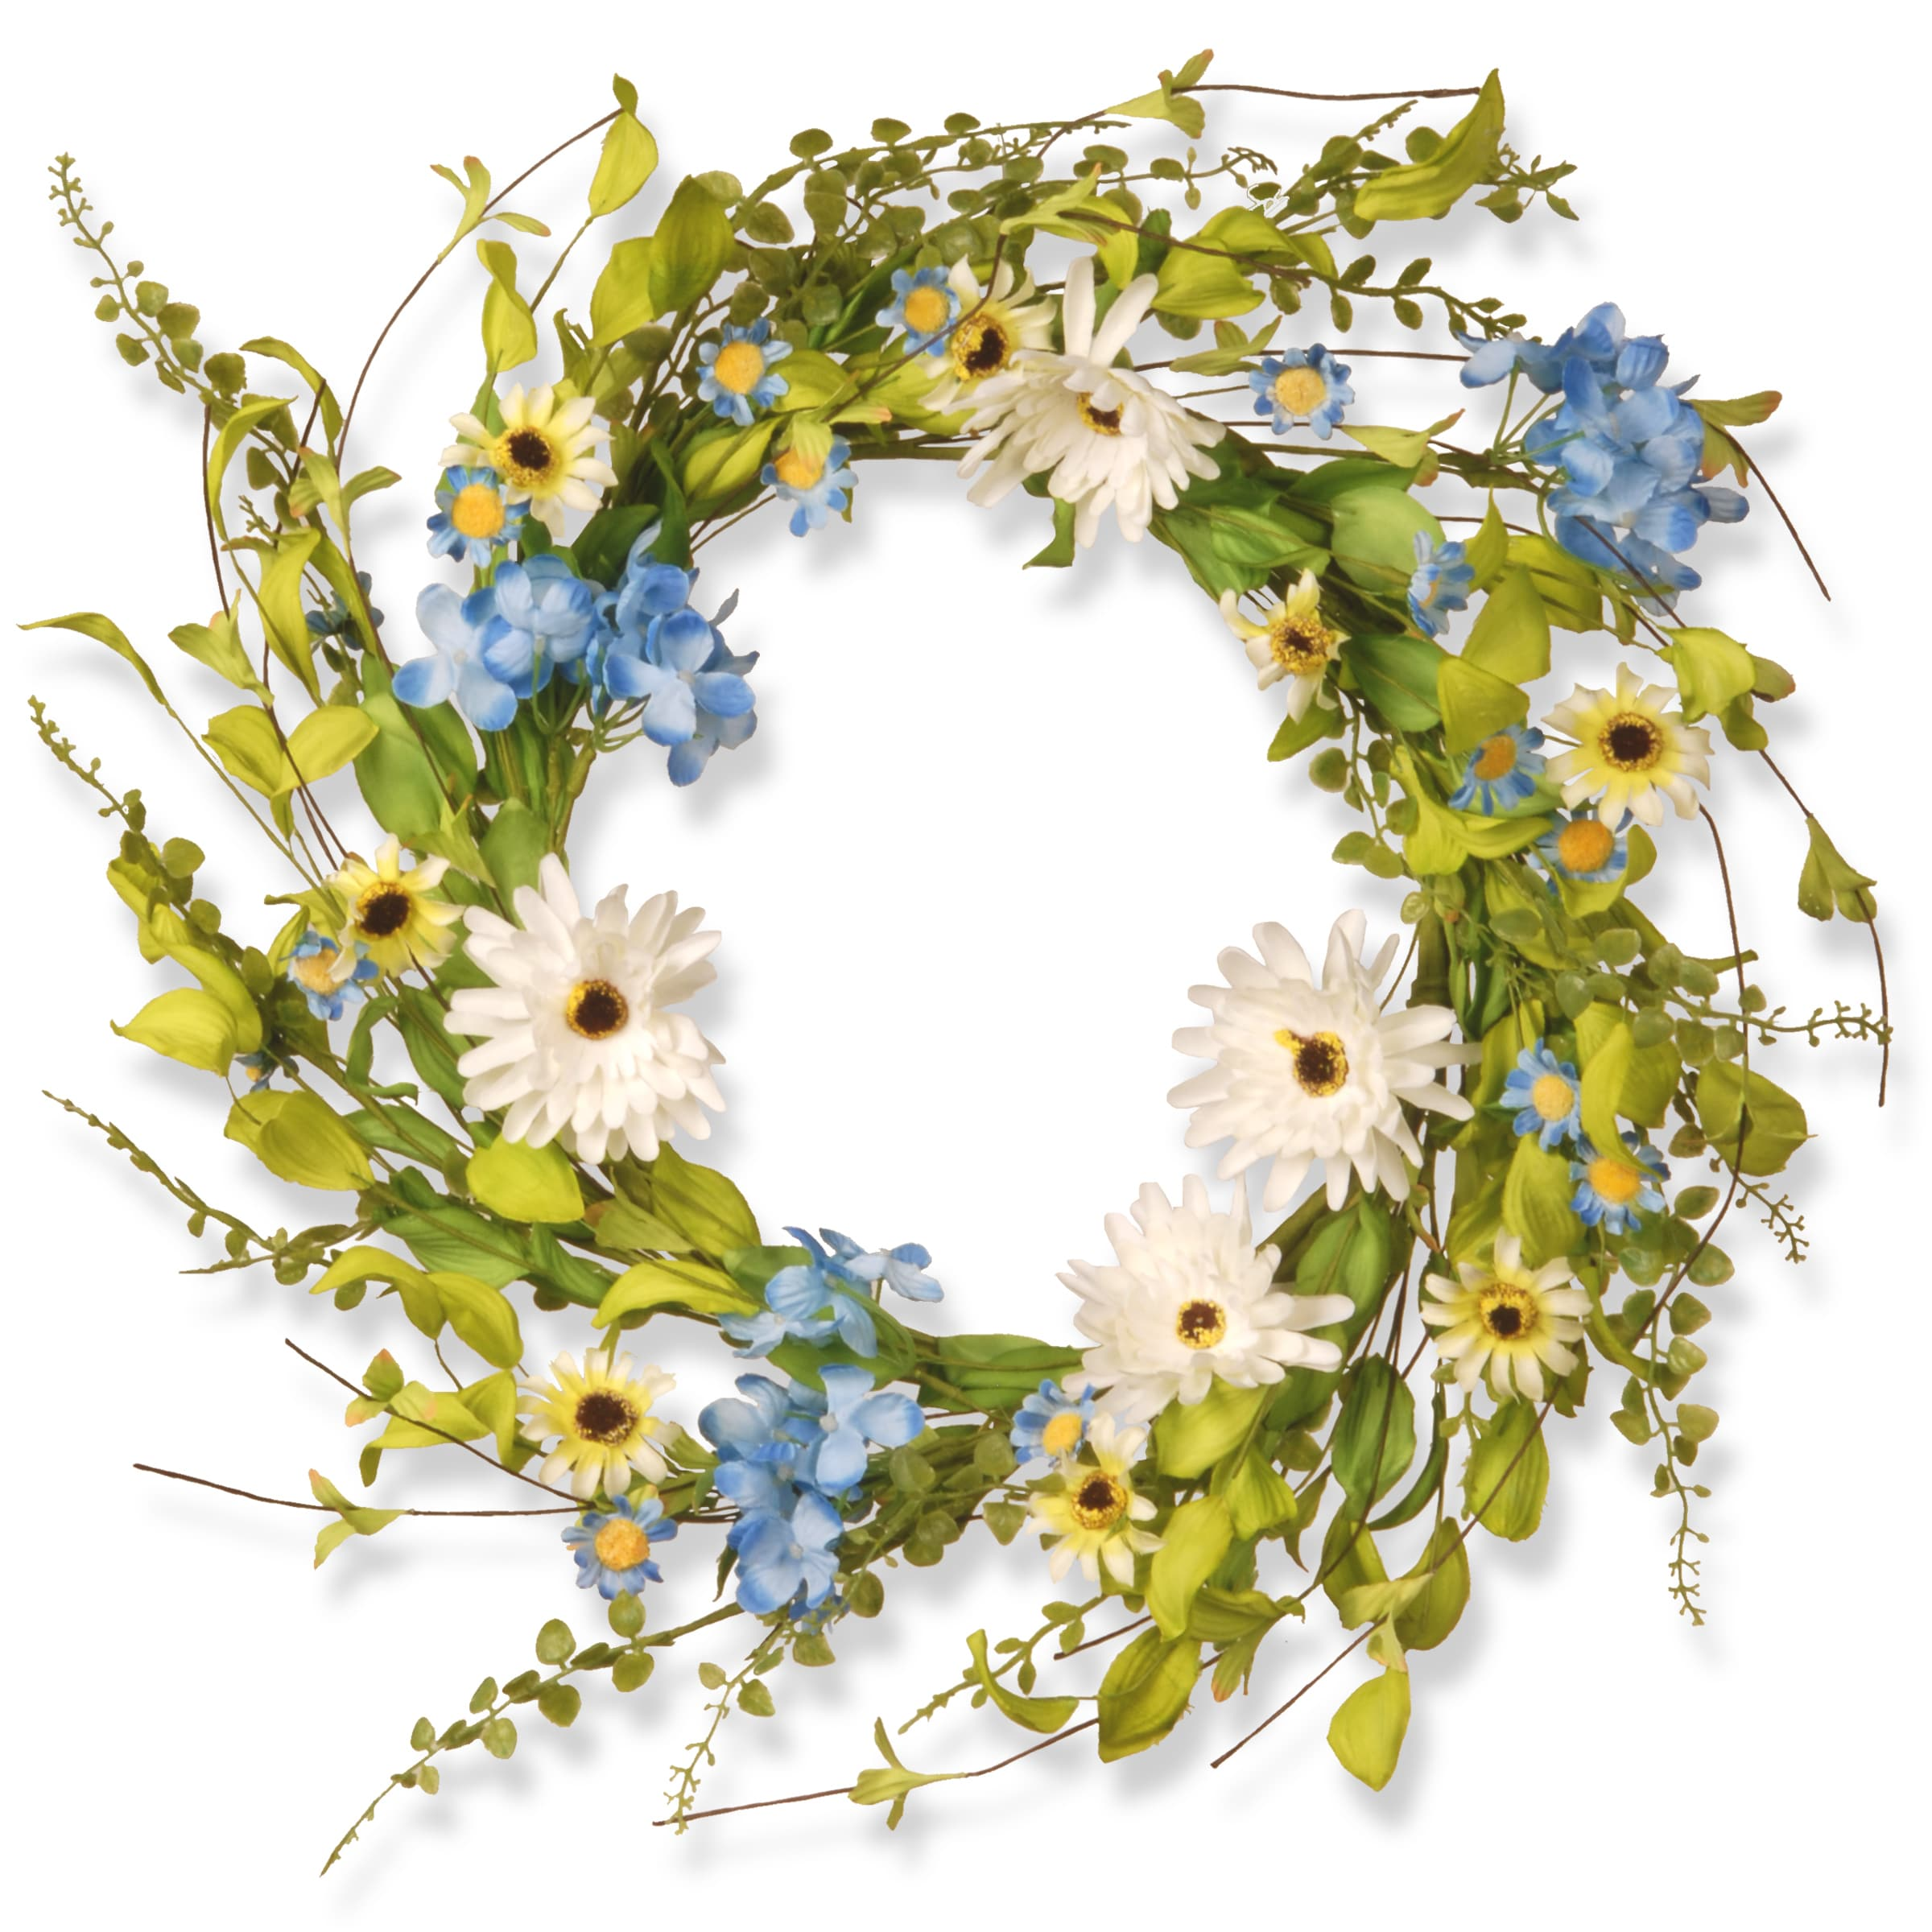 Shop national tree company 20 inch floral wreath decor white and shop national tree company 20 inch floral wreath decor white and blue hydranga and gerbera flowers free shipping on orders over 45 overstock izmirmasajfo